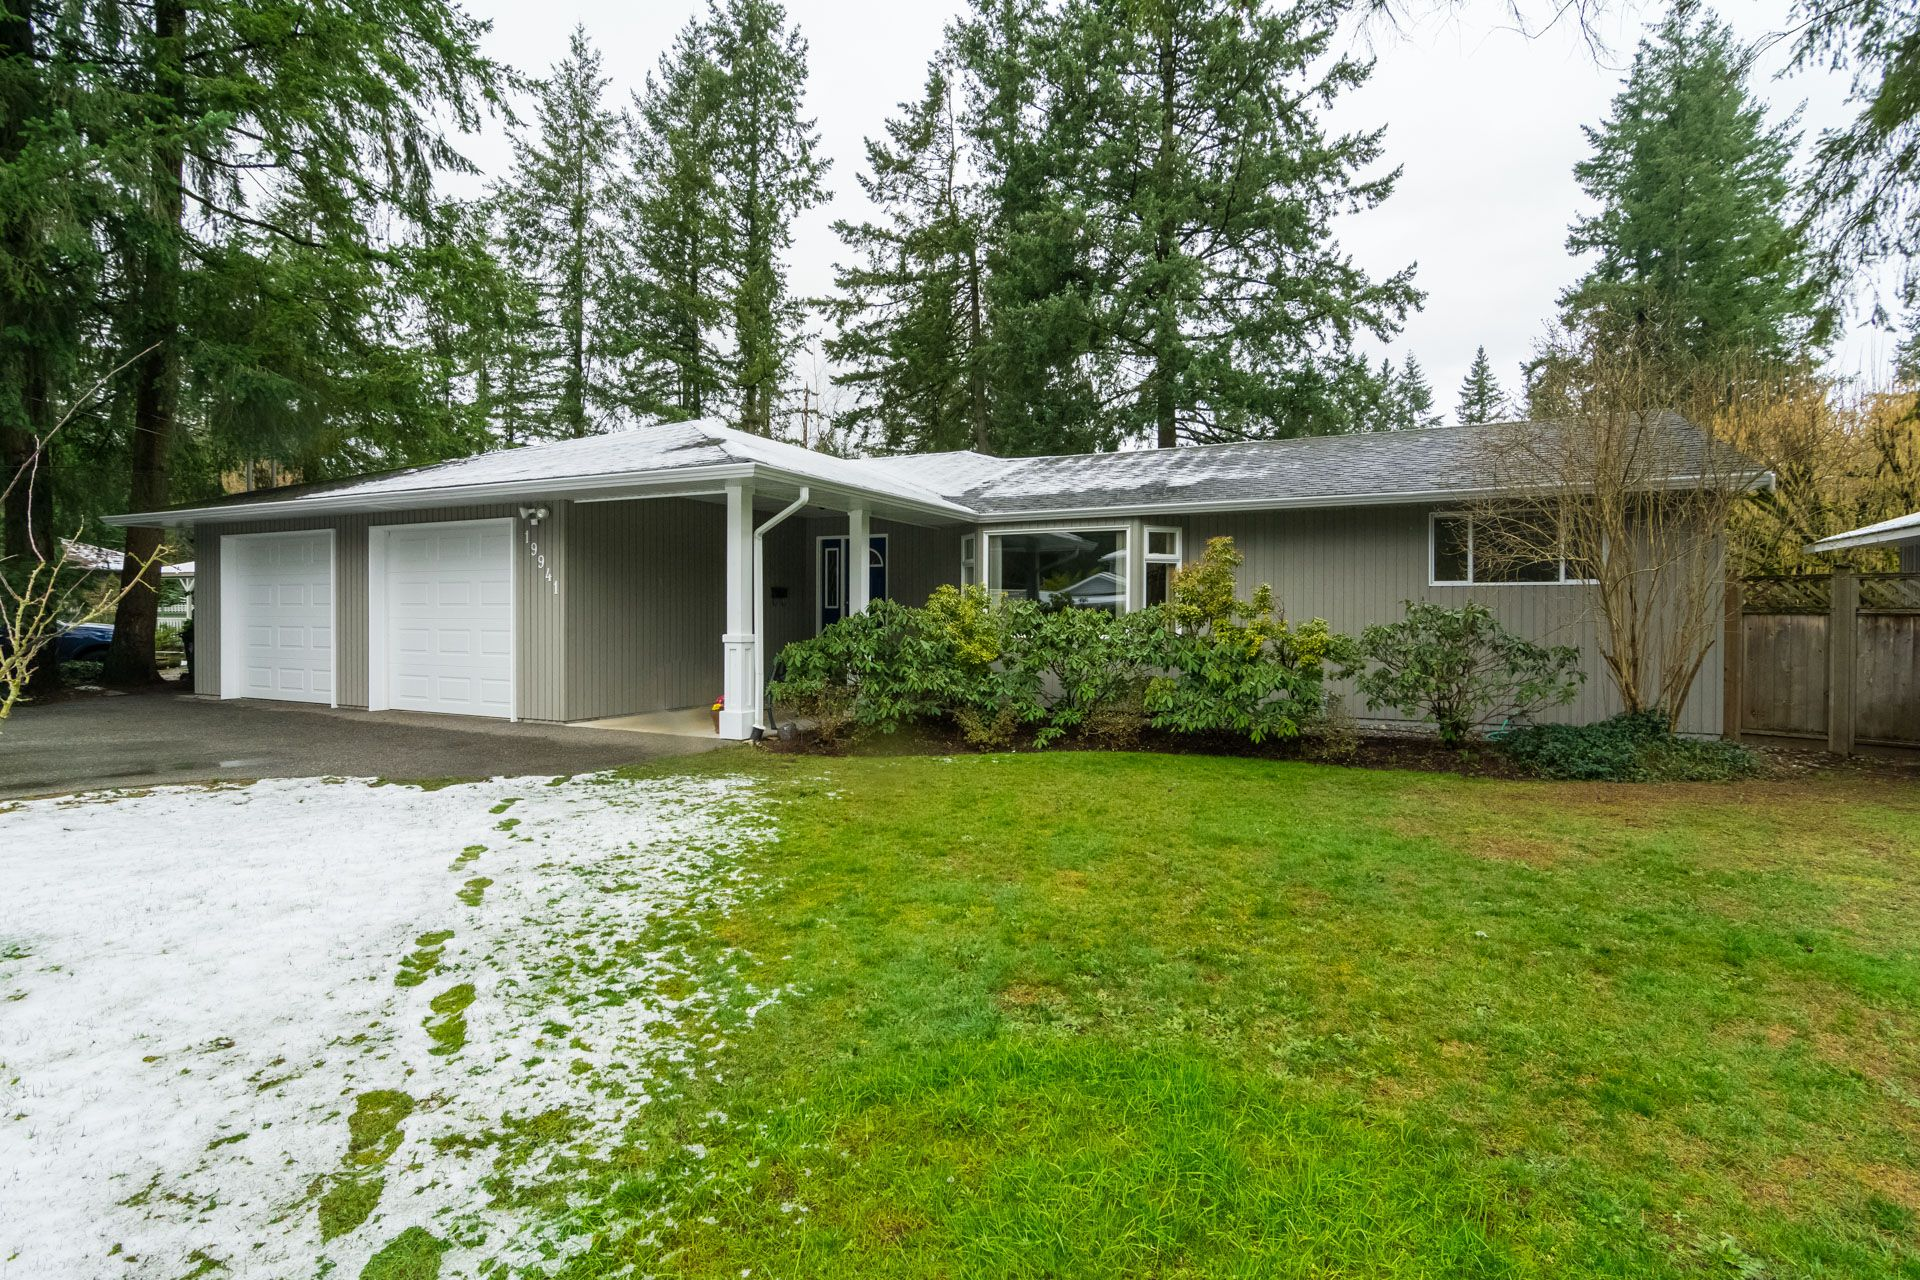 """Photo 3: Photos: 19941 37 Avenue in Langley: Brookswood Langley House for sale in """"Brookswood"""" : MLS®# R2240474"""